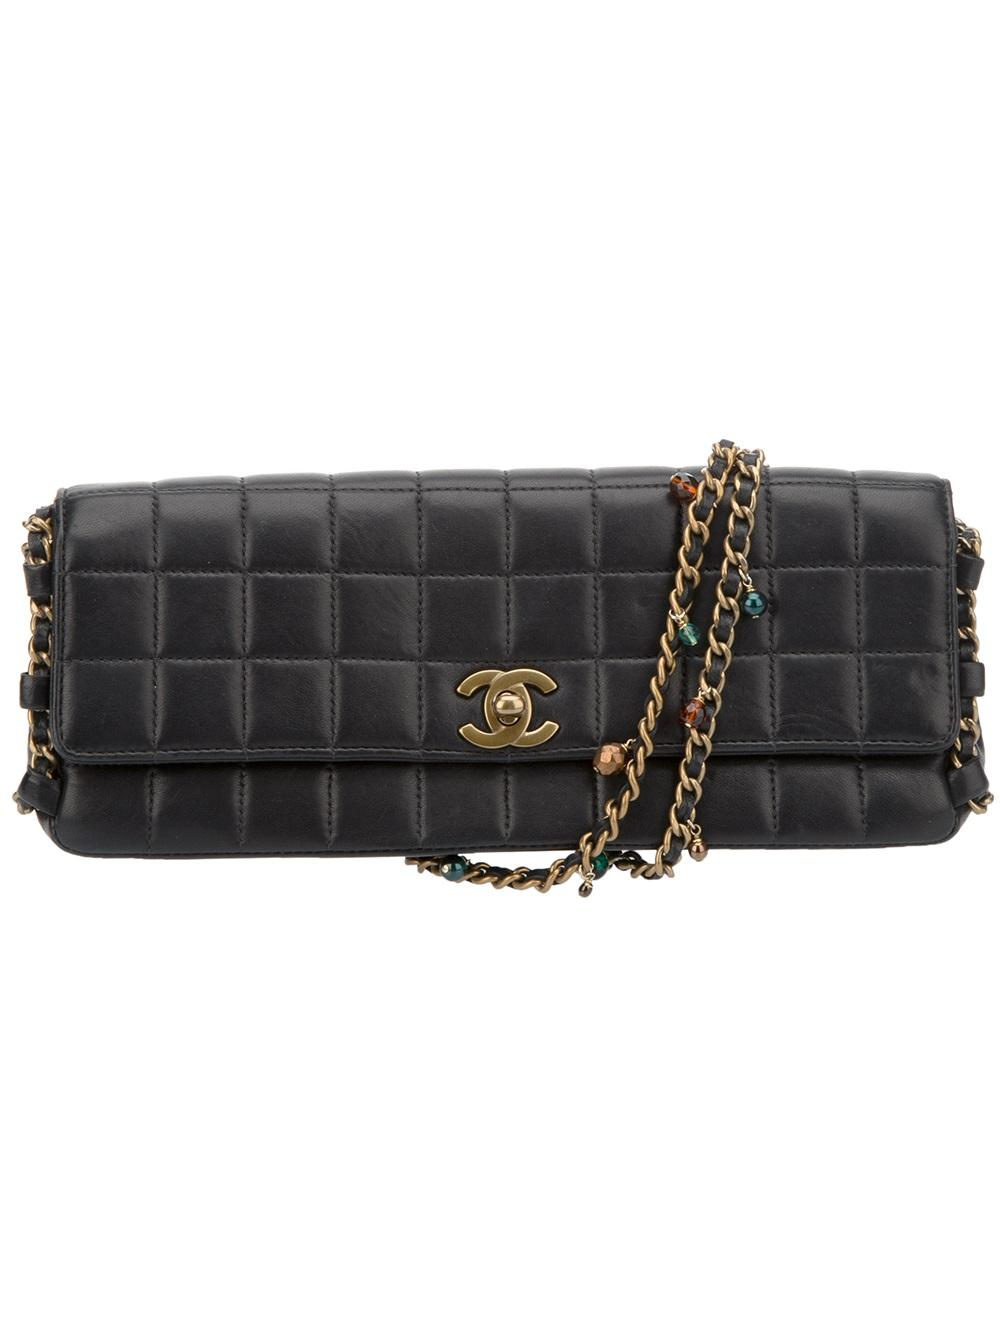 CHANEL VINTAGE limited edition quilted chain bag